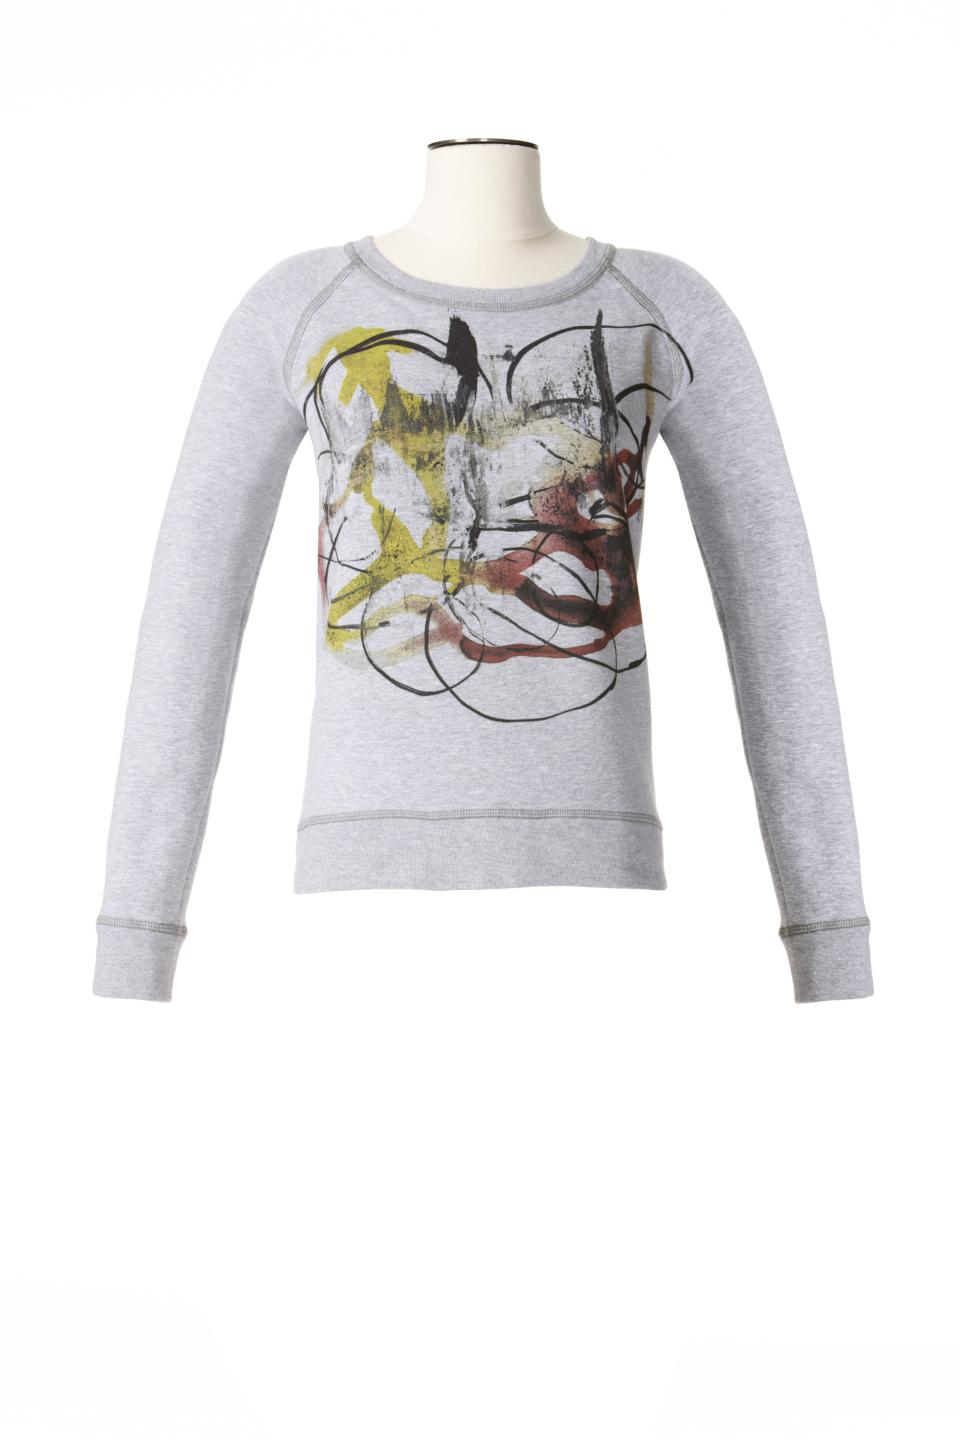 <b>Proenza Schouler for Target + Neiman Marcus Holiday Collection Sweatshirt</b><br><br> Price: $29.99<br><br> Size: XS – XL<br><br>